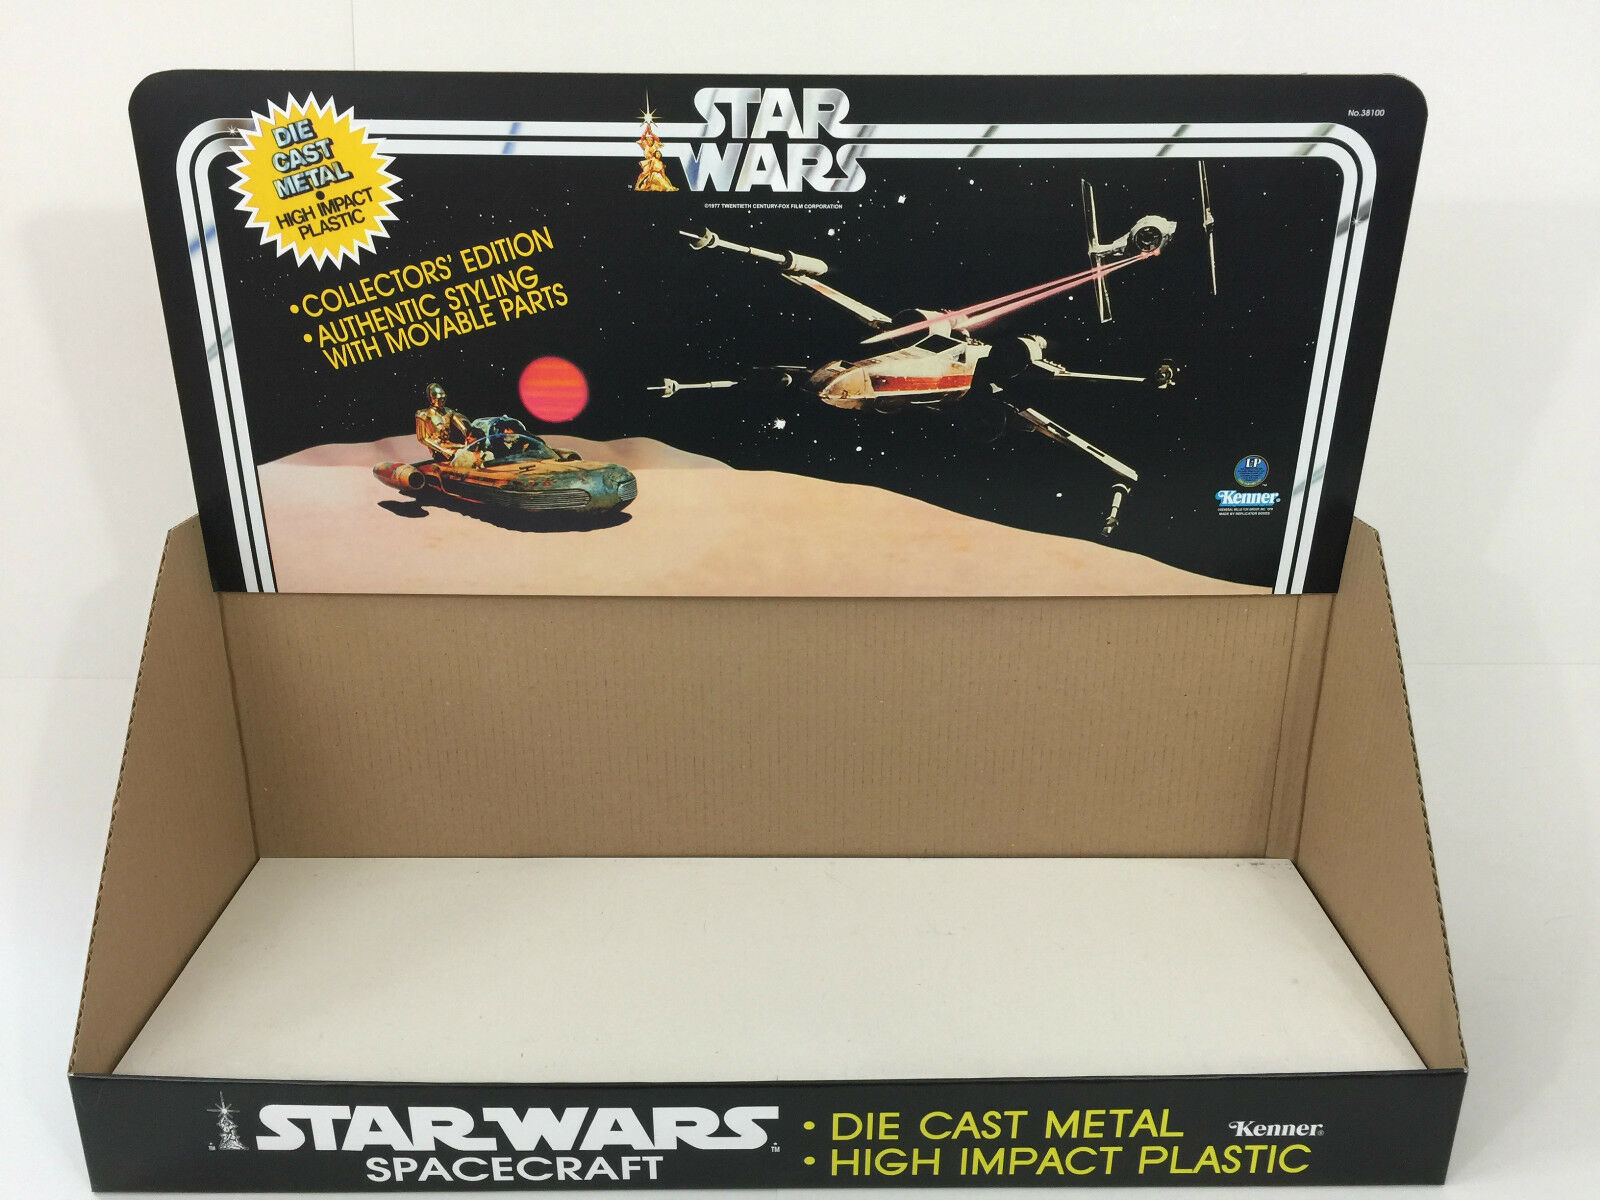 Reproduction vintage star wars die cast 1st edition display bin and header